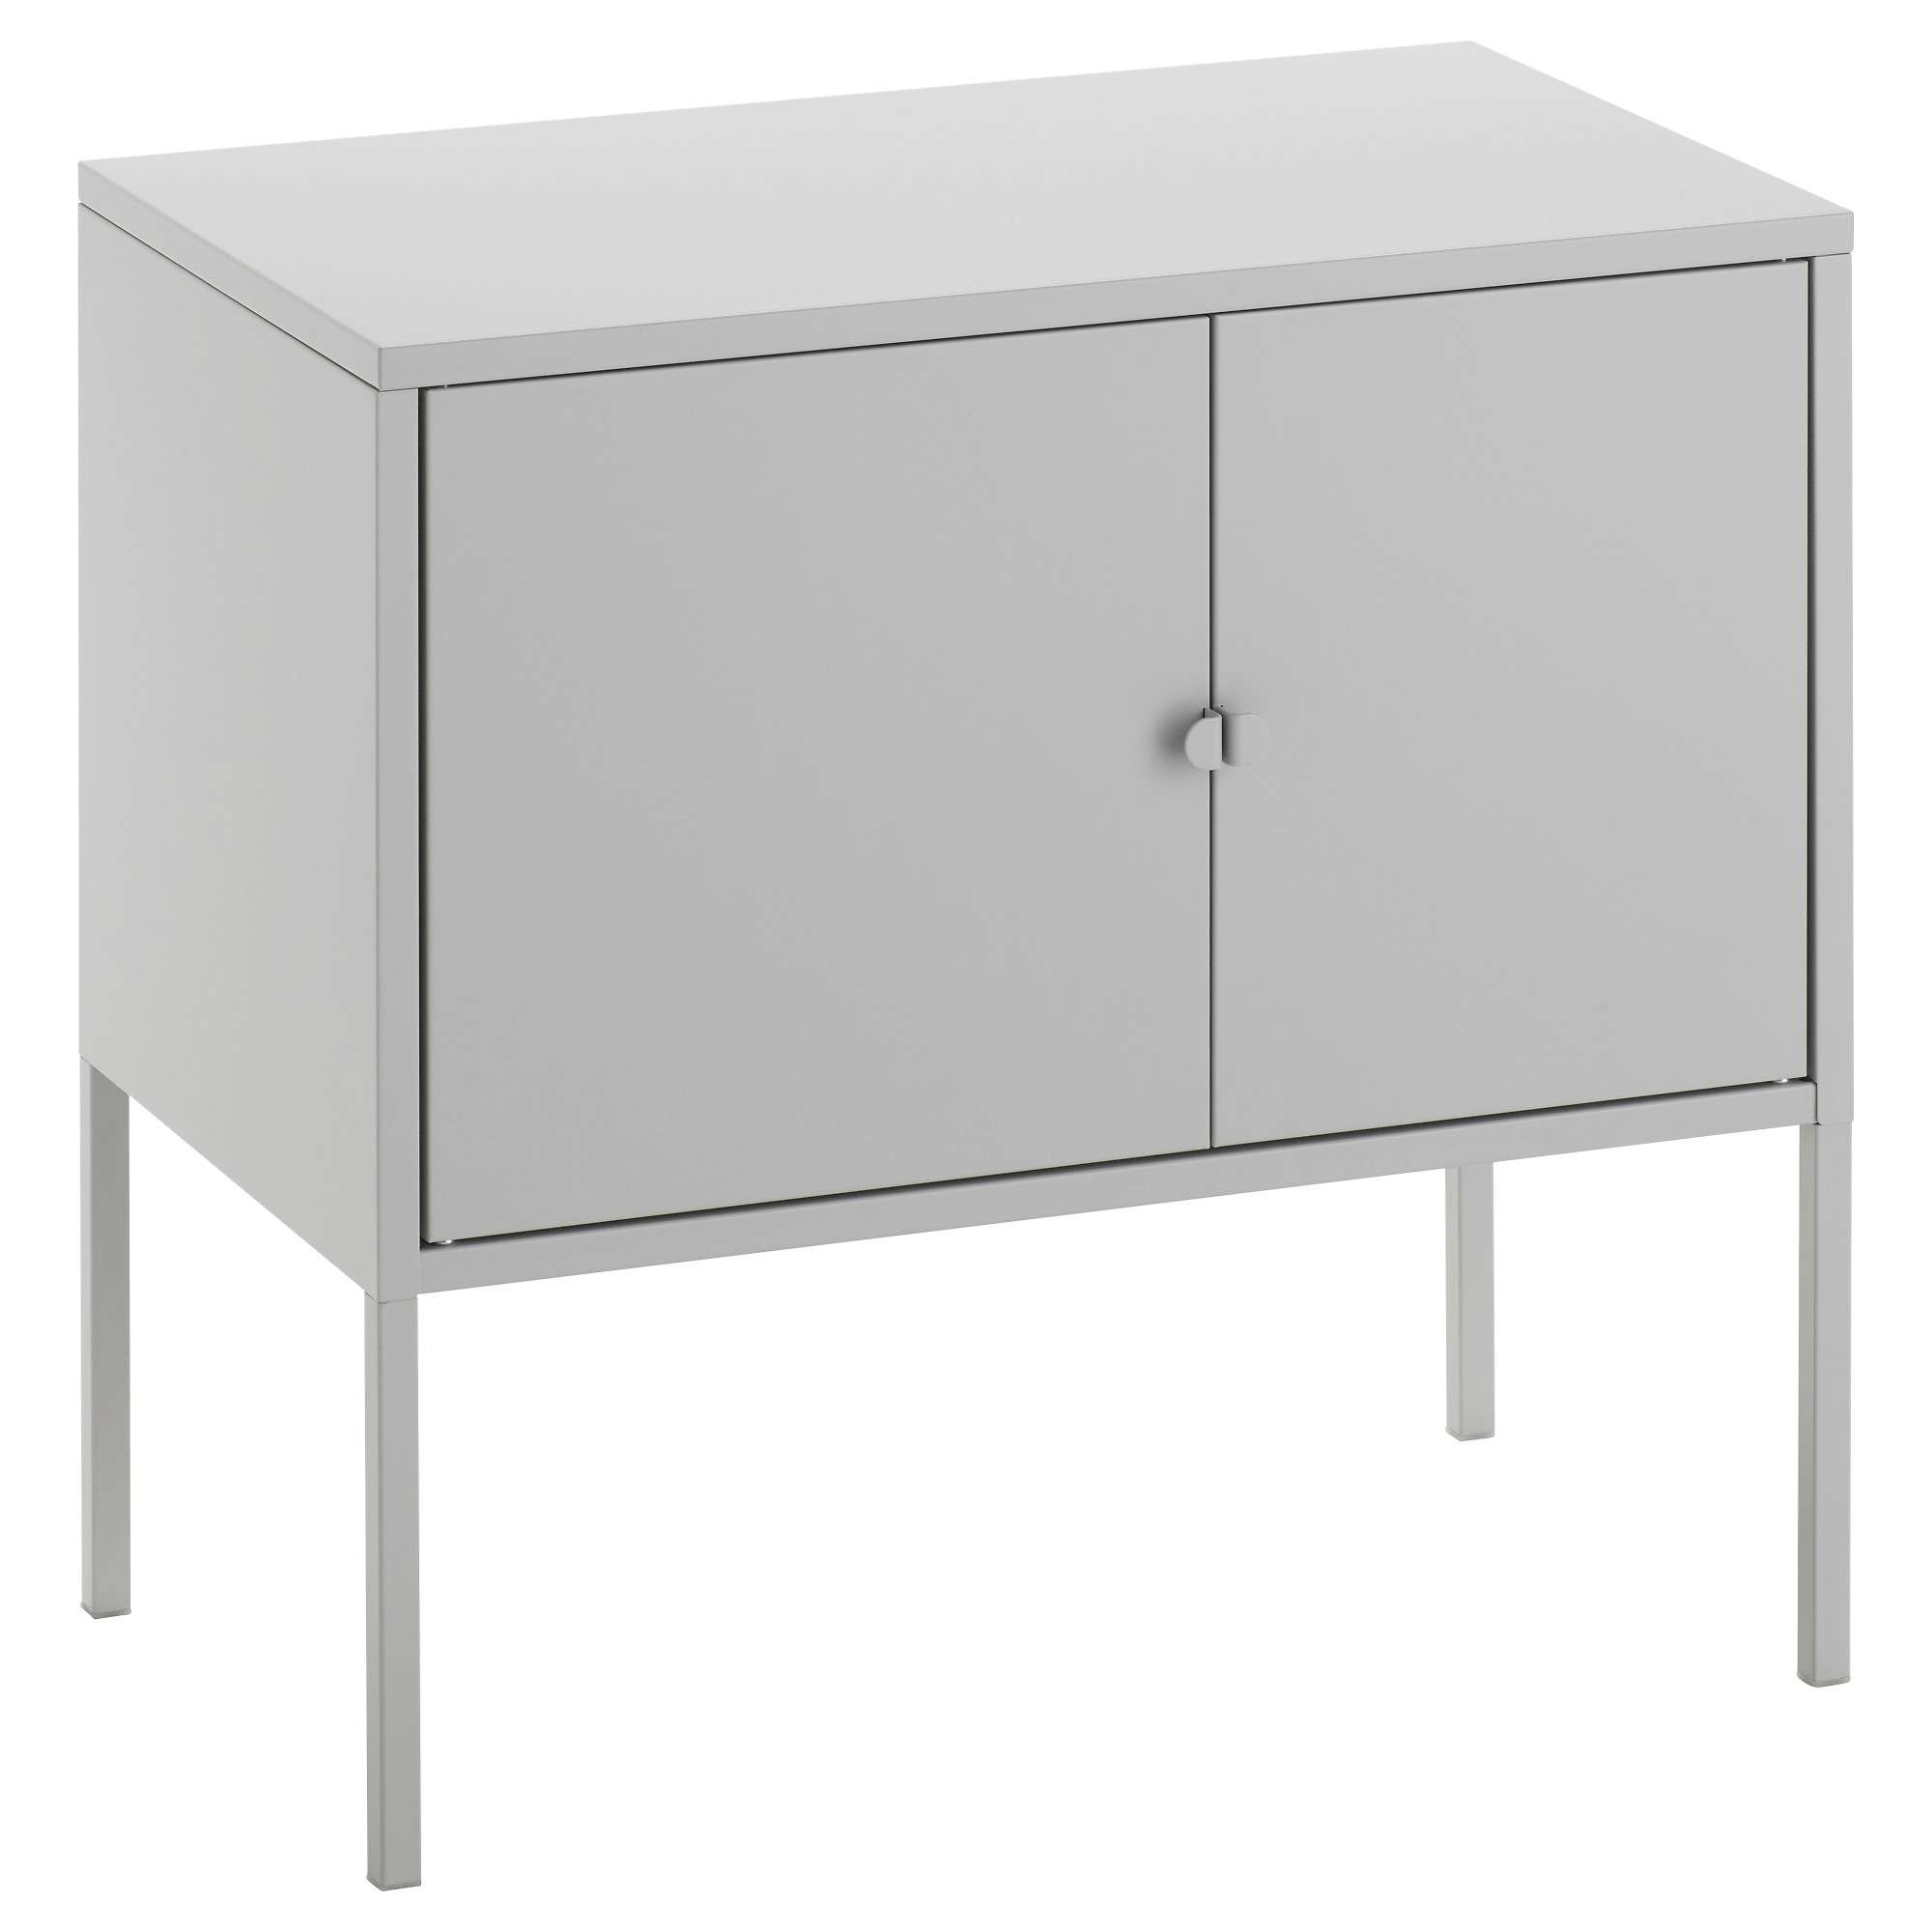 Cabinets & Sideboards – Ikea With Regard To Ikea Sideboards (View 3 of 20)